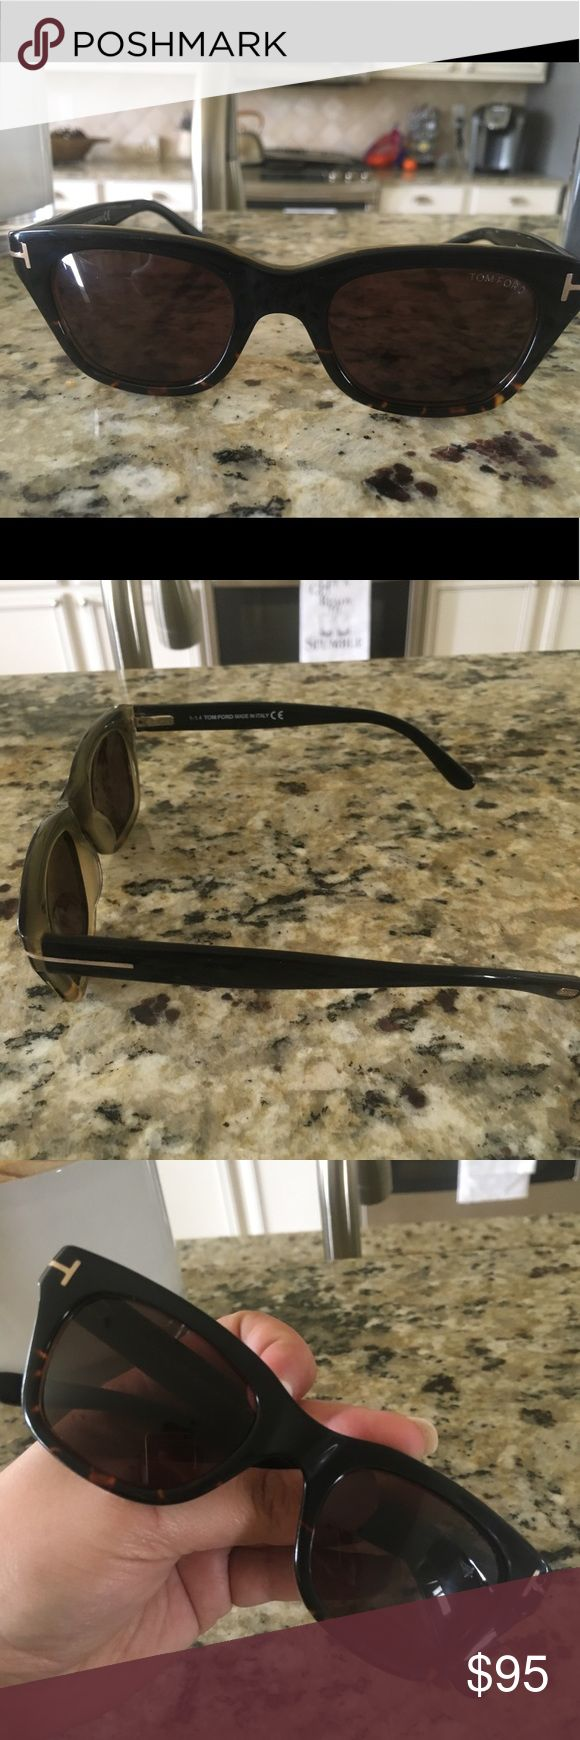 Tom Ford Women's sunglasses No box or case. Barely worn. Excellent condition. Tom Ford Accessories Sunglasses